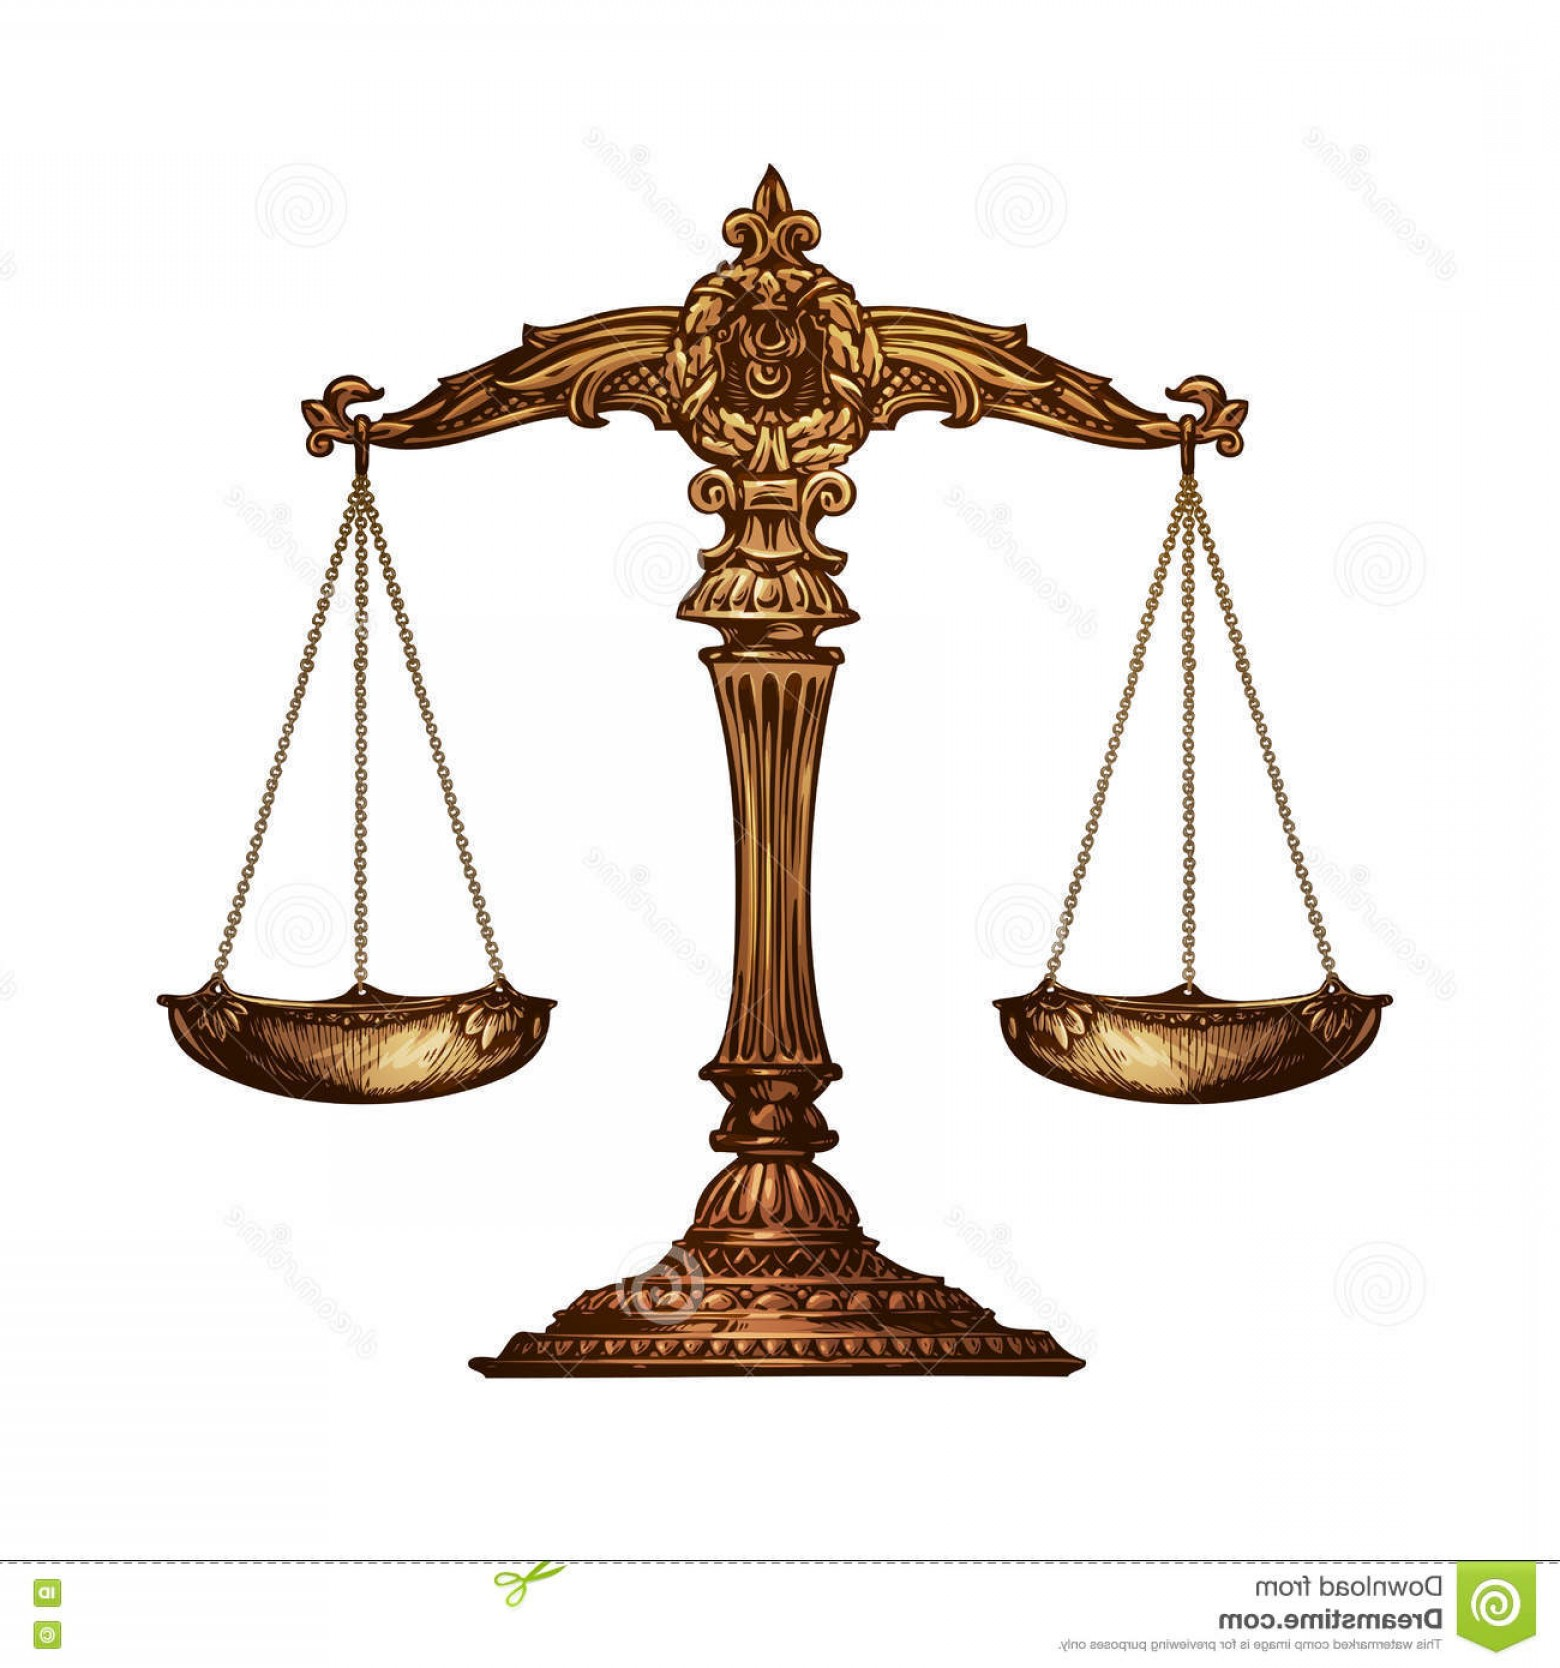 Scales Of Justice Vector: Stock Illustration Scales Justice Vector Illustration White Background Image